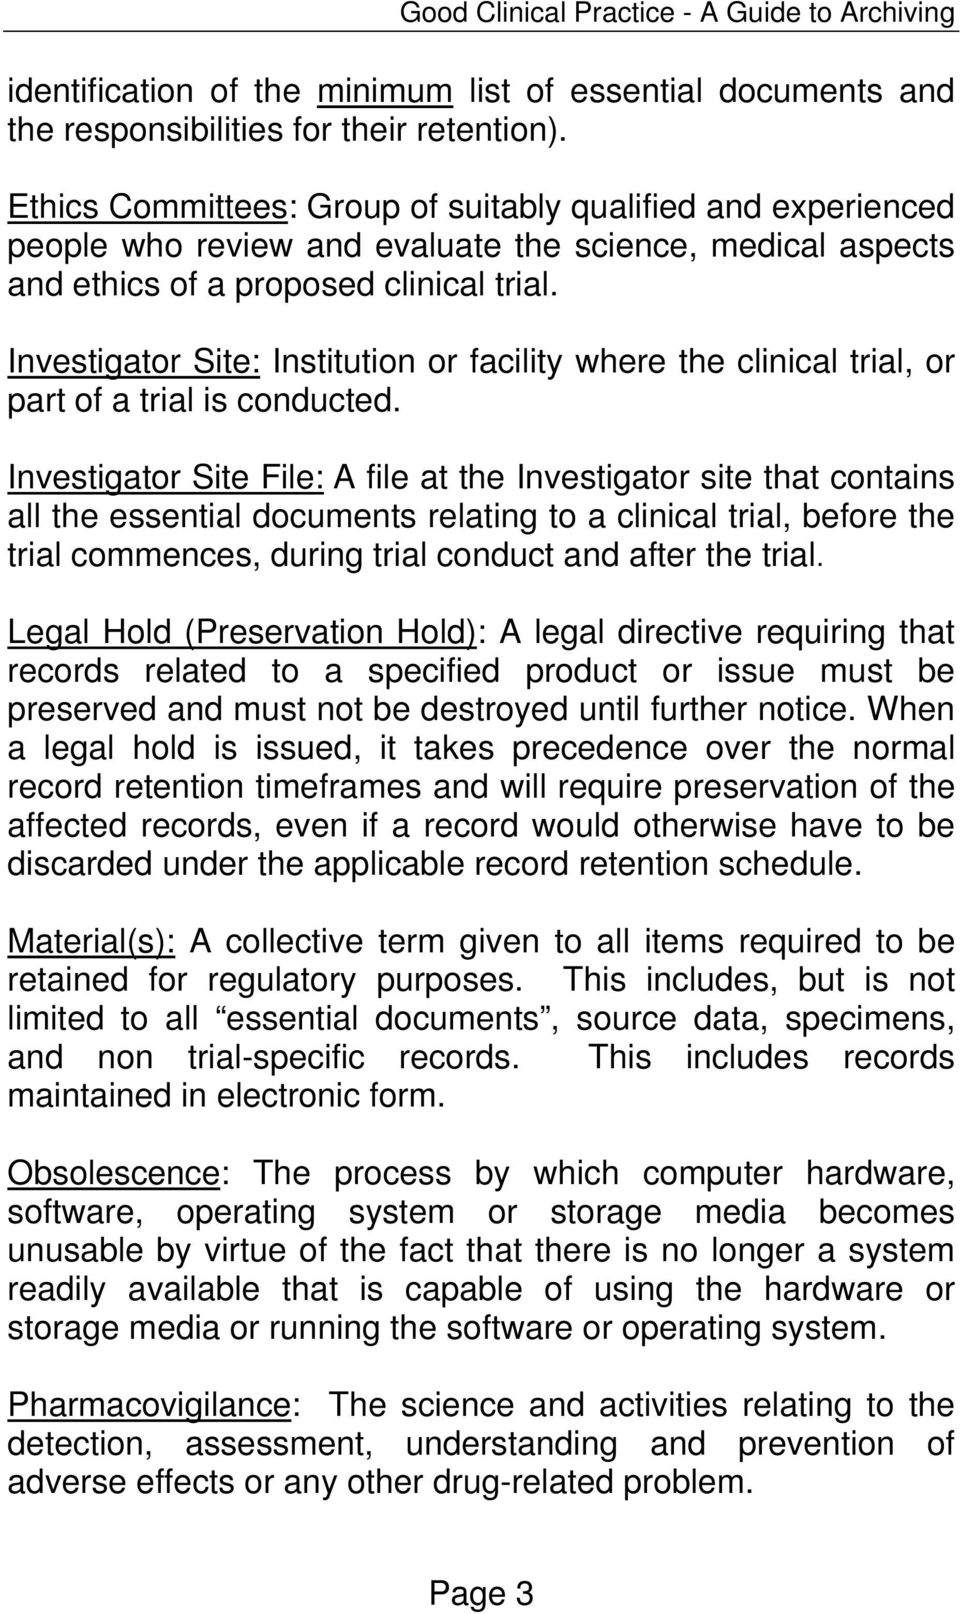 Investigator Site: Institution or facility where the clinical trial, or part of a trial is conducted.